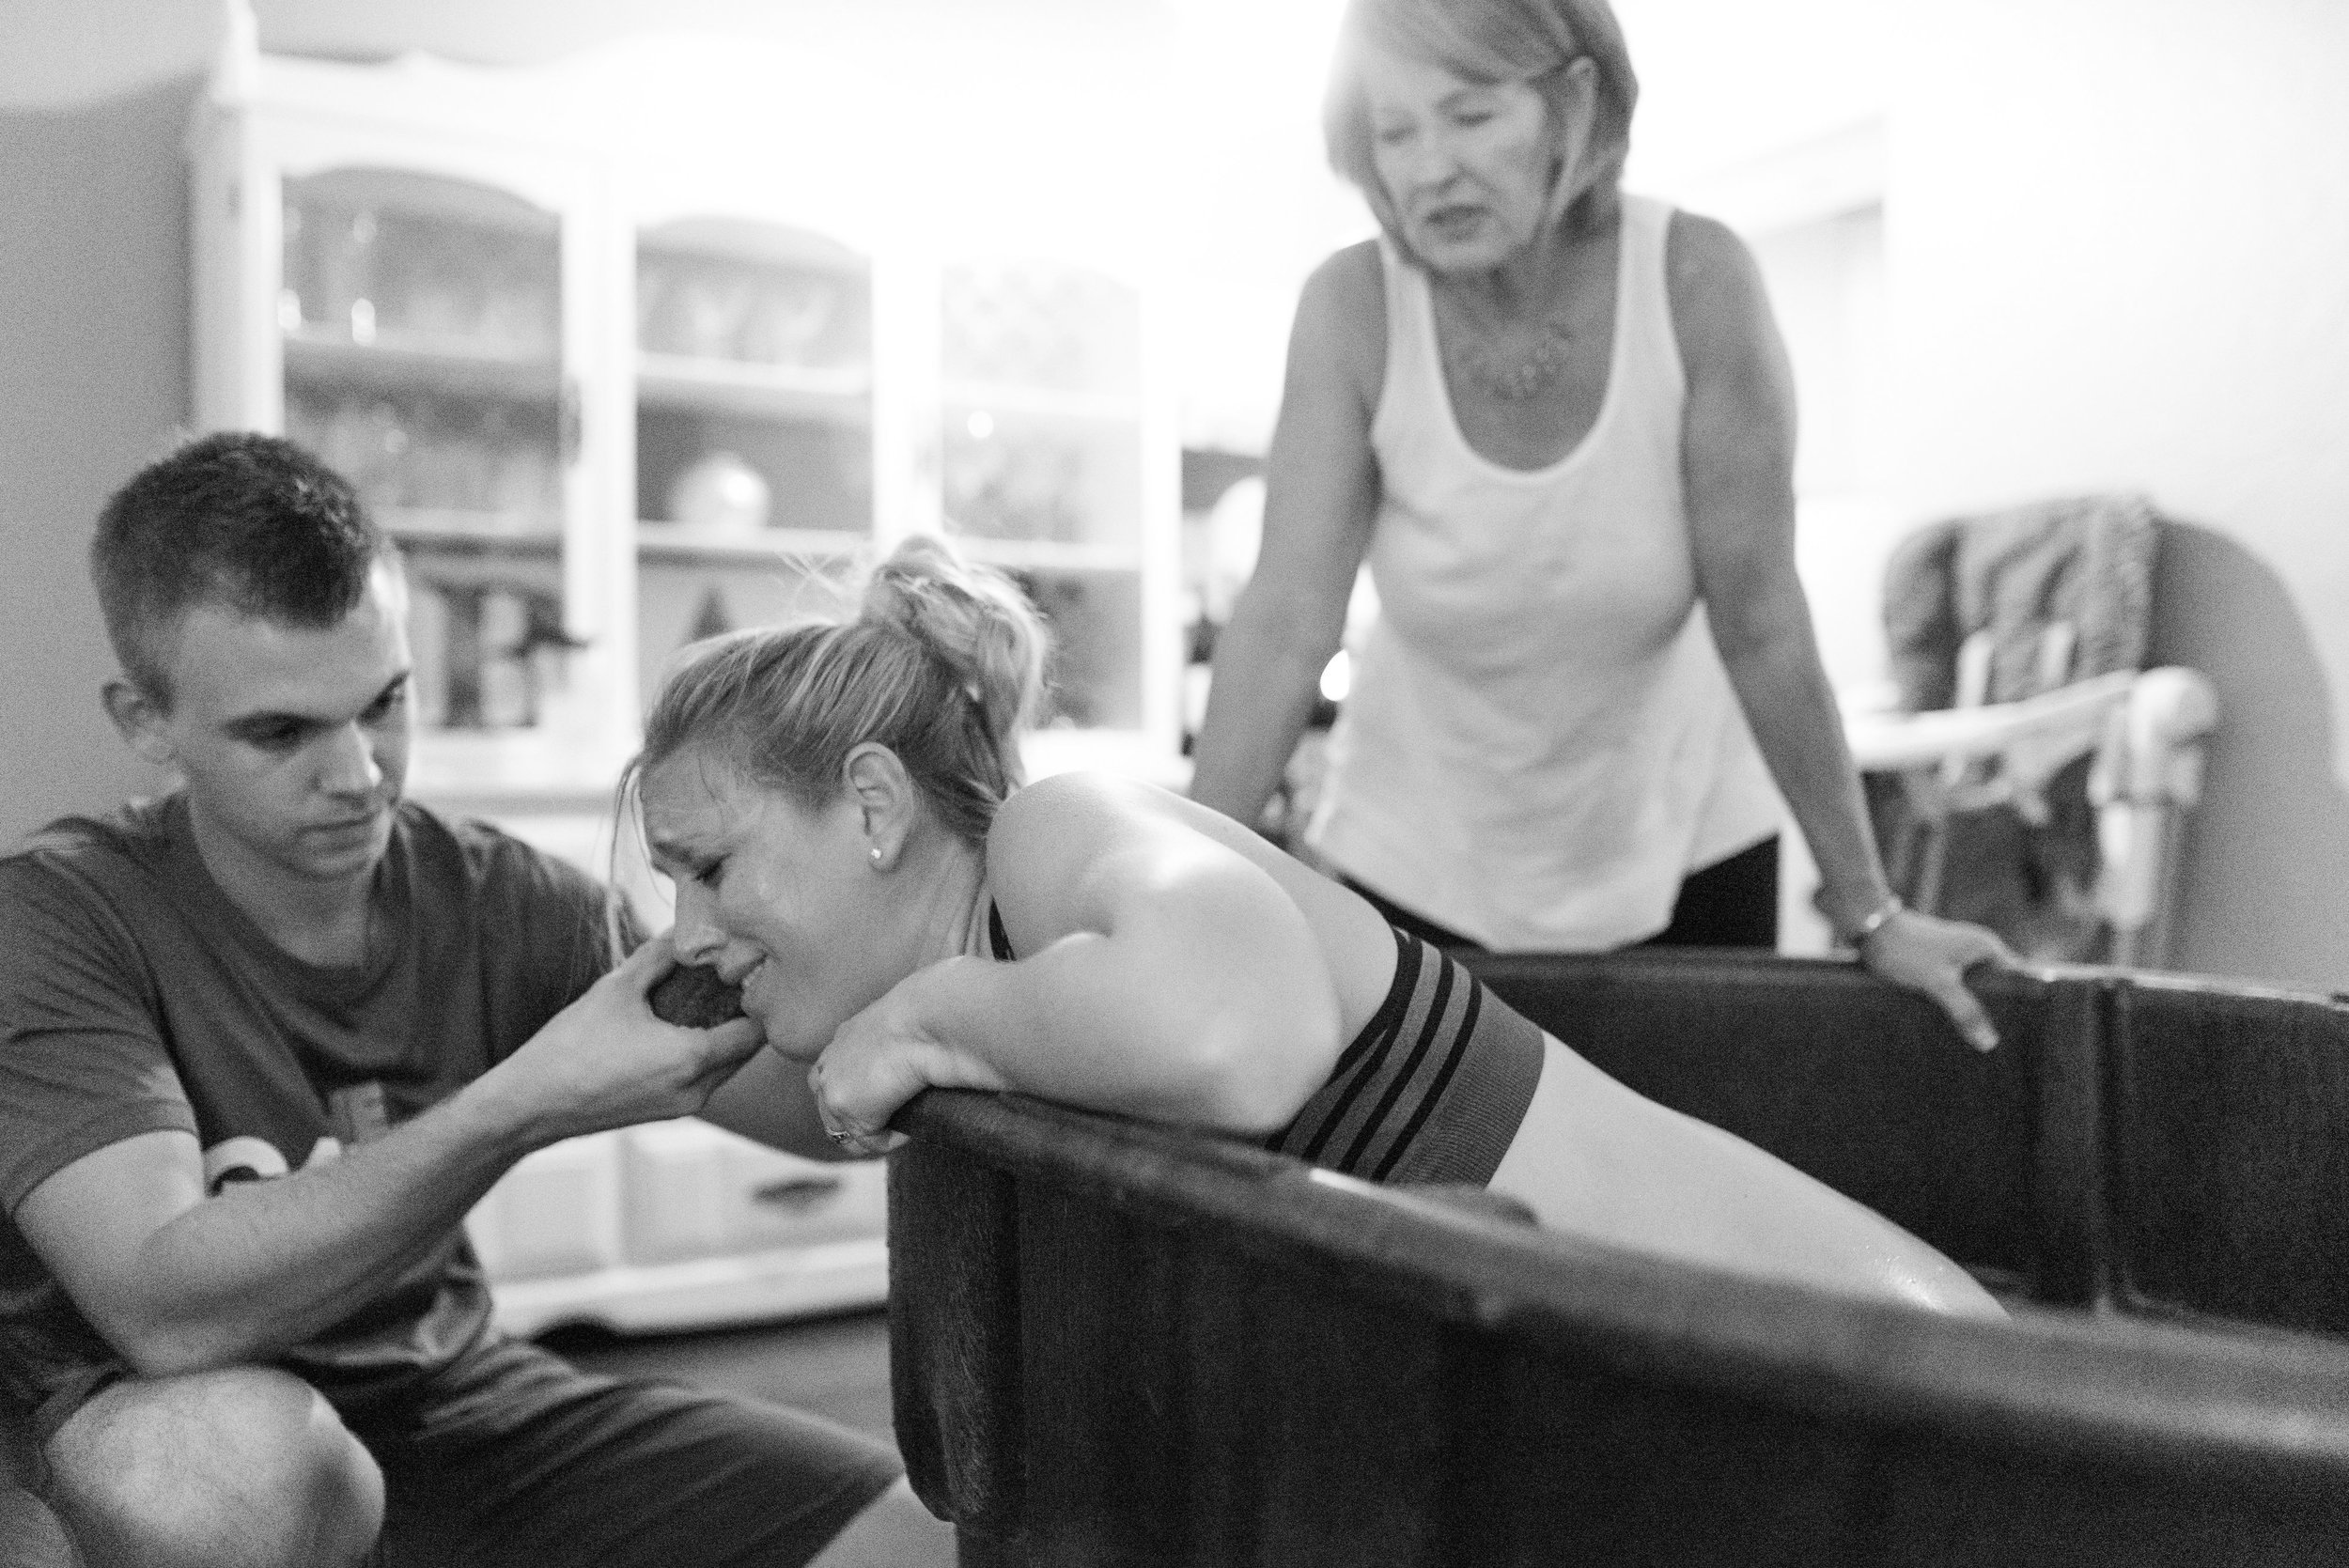 water birth with midwife charlie rae young of barefoot birth tampa fl